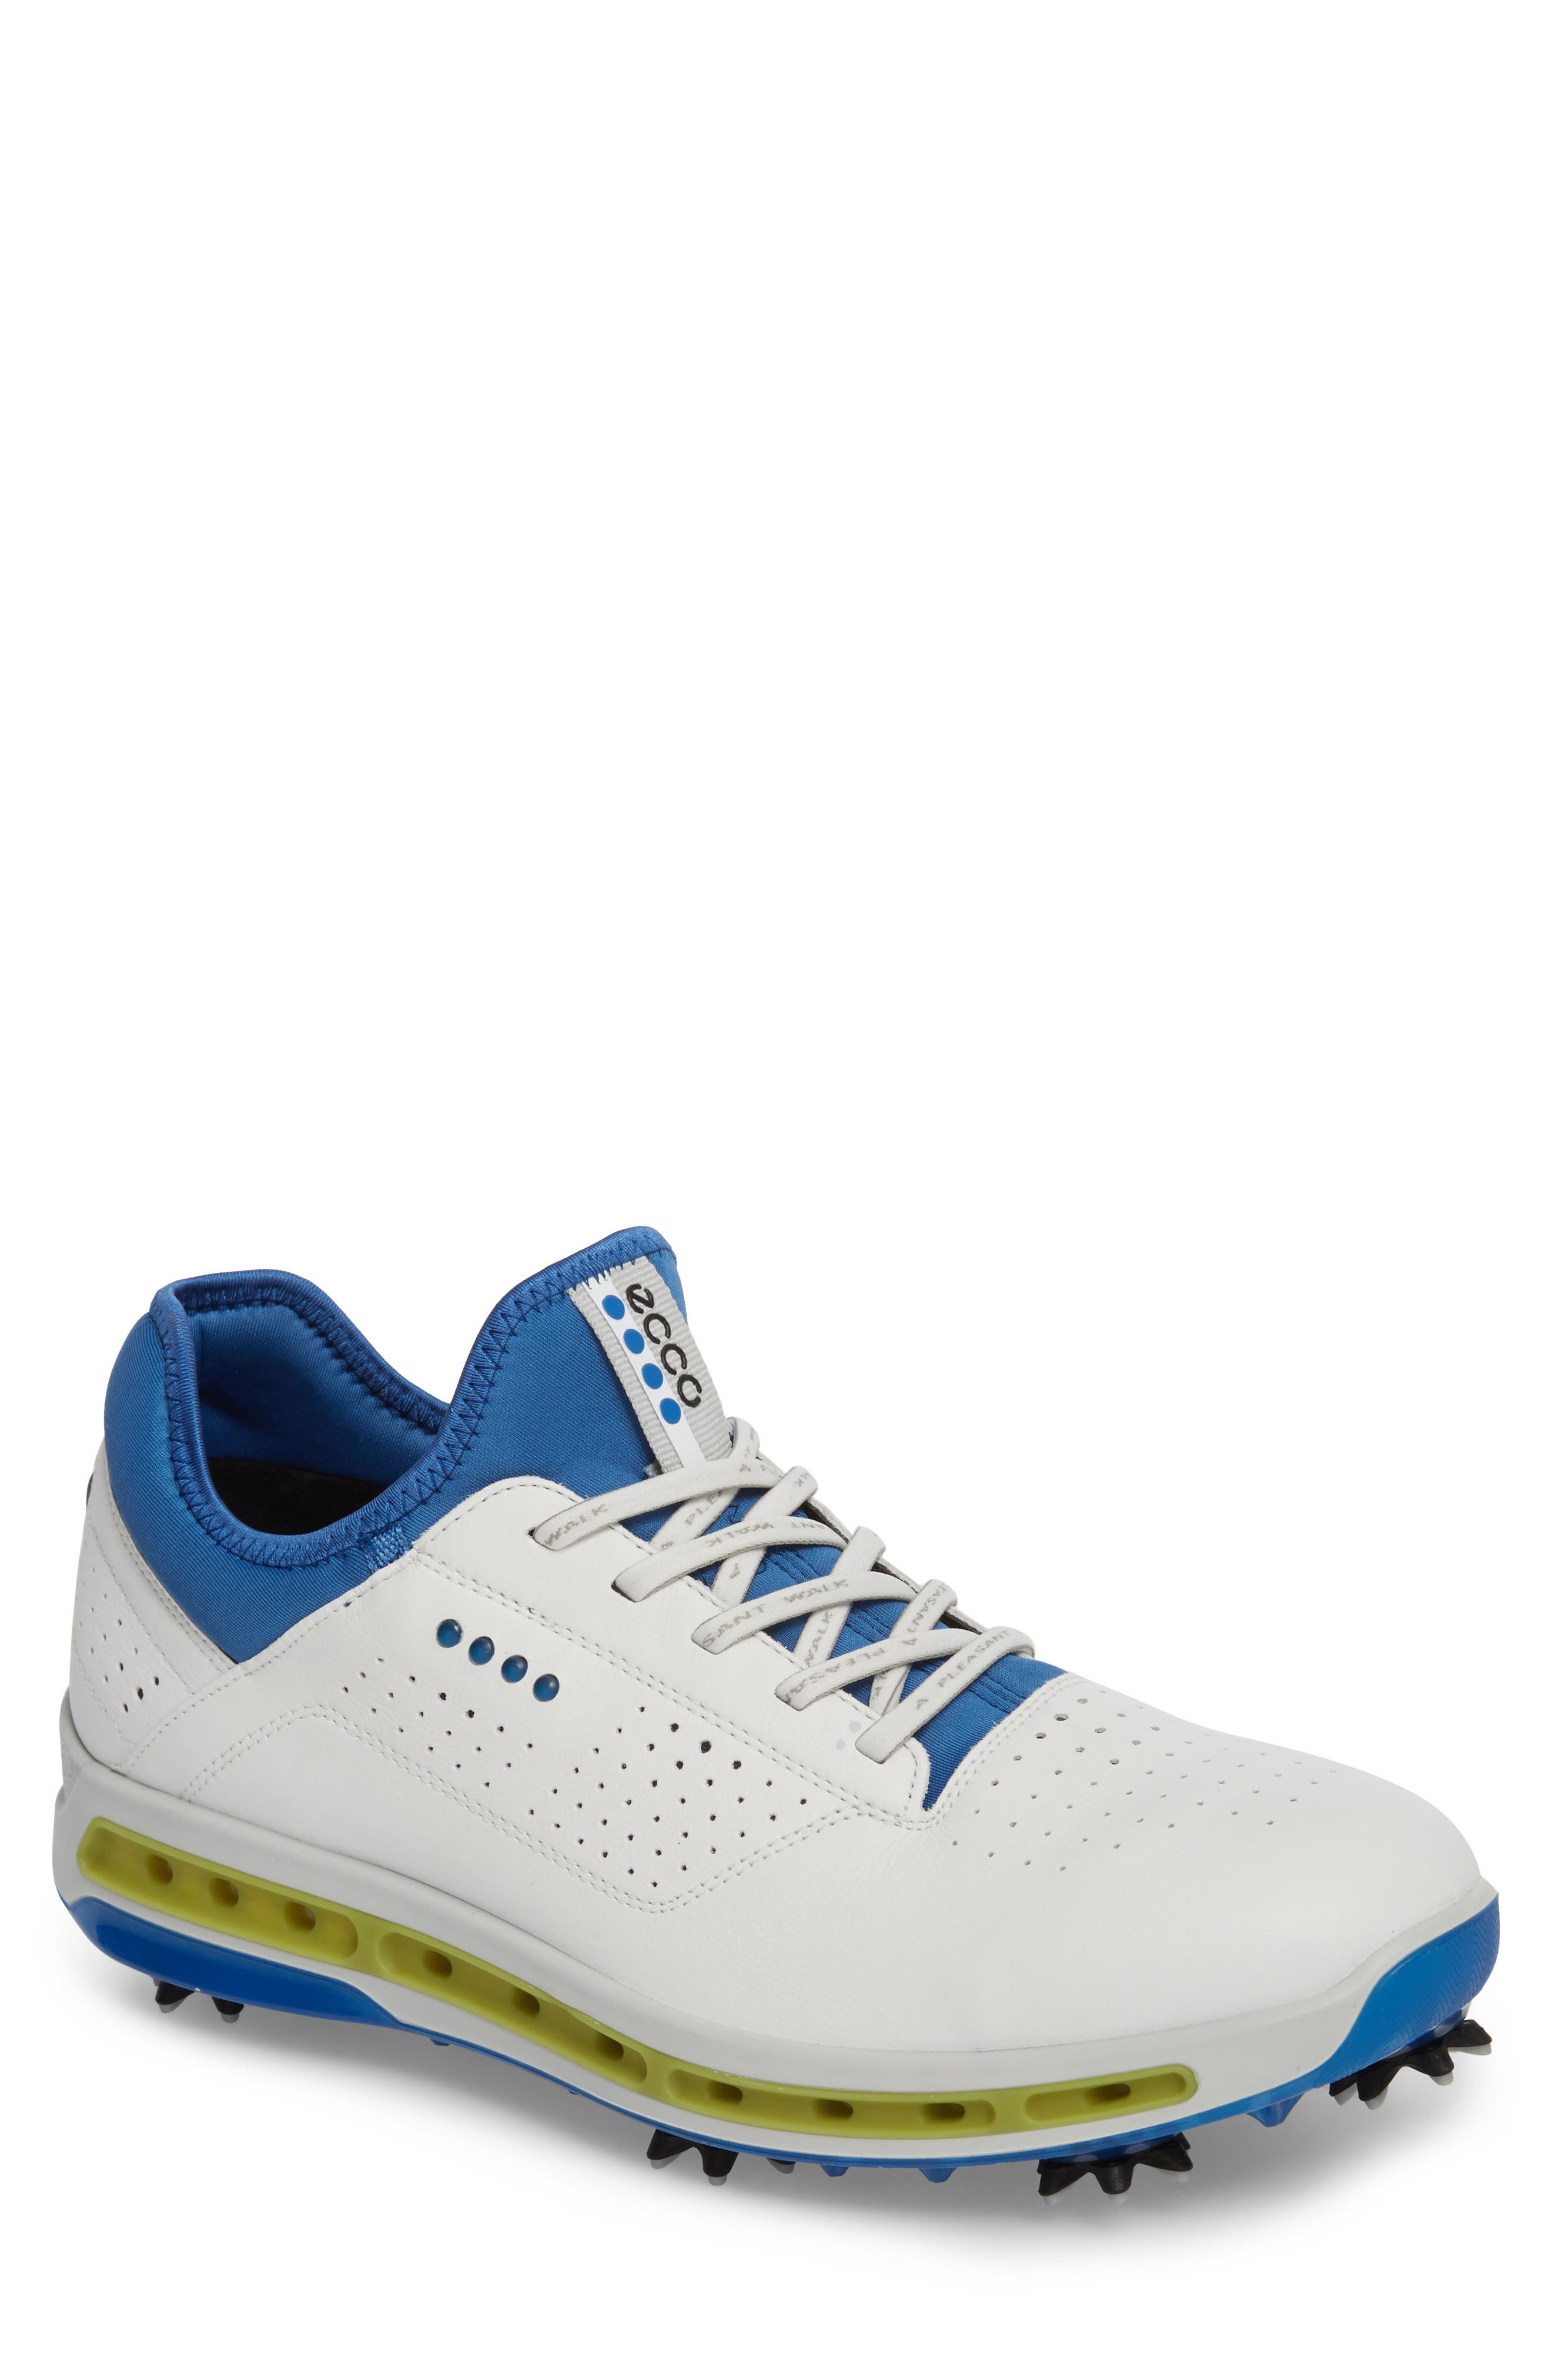 Cool 18 Gore-Tex Golf Shoe,                         Main,                         color, White Leather